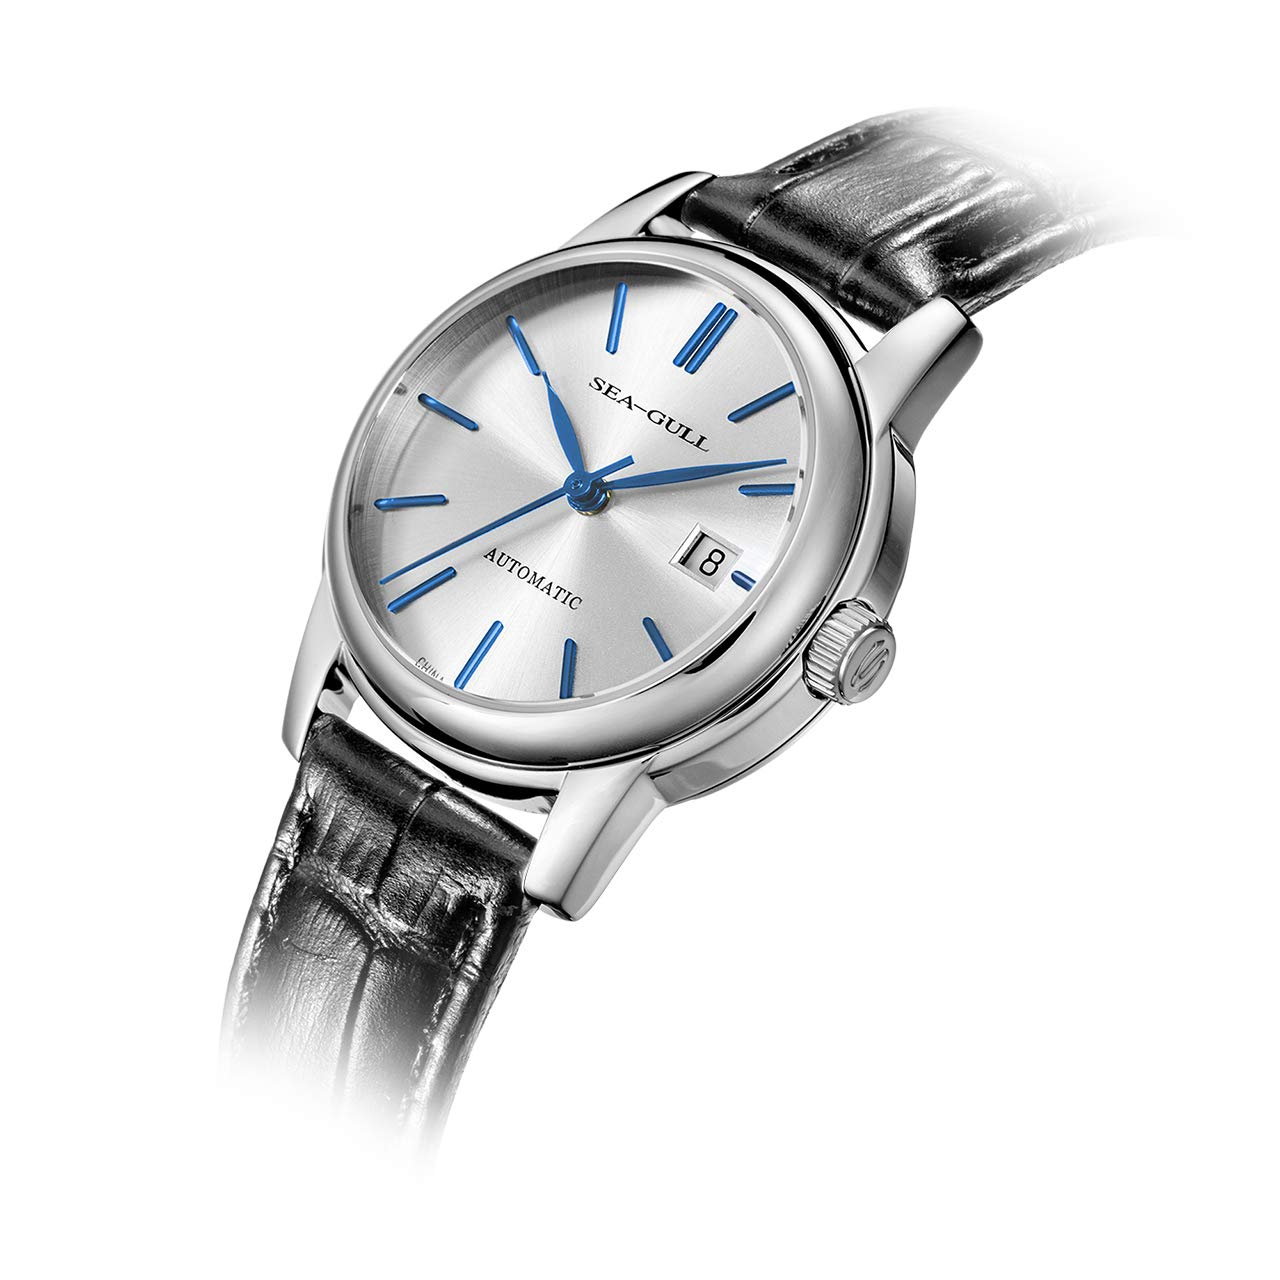 Sea-Gull Automatic Dress Watch with Blue Hands - D819.616